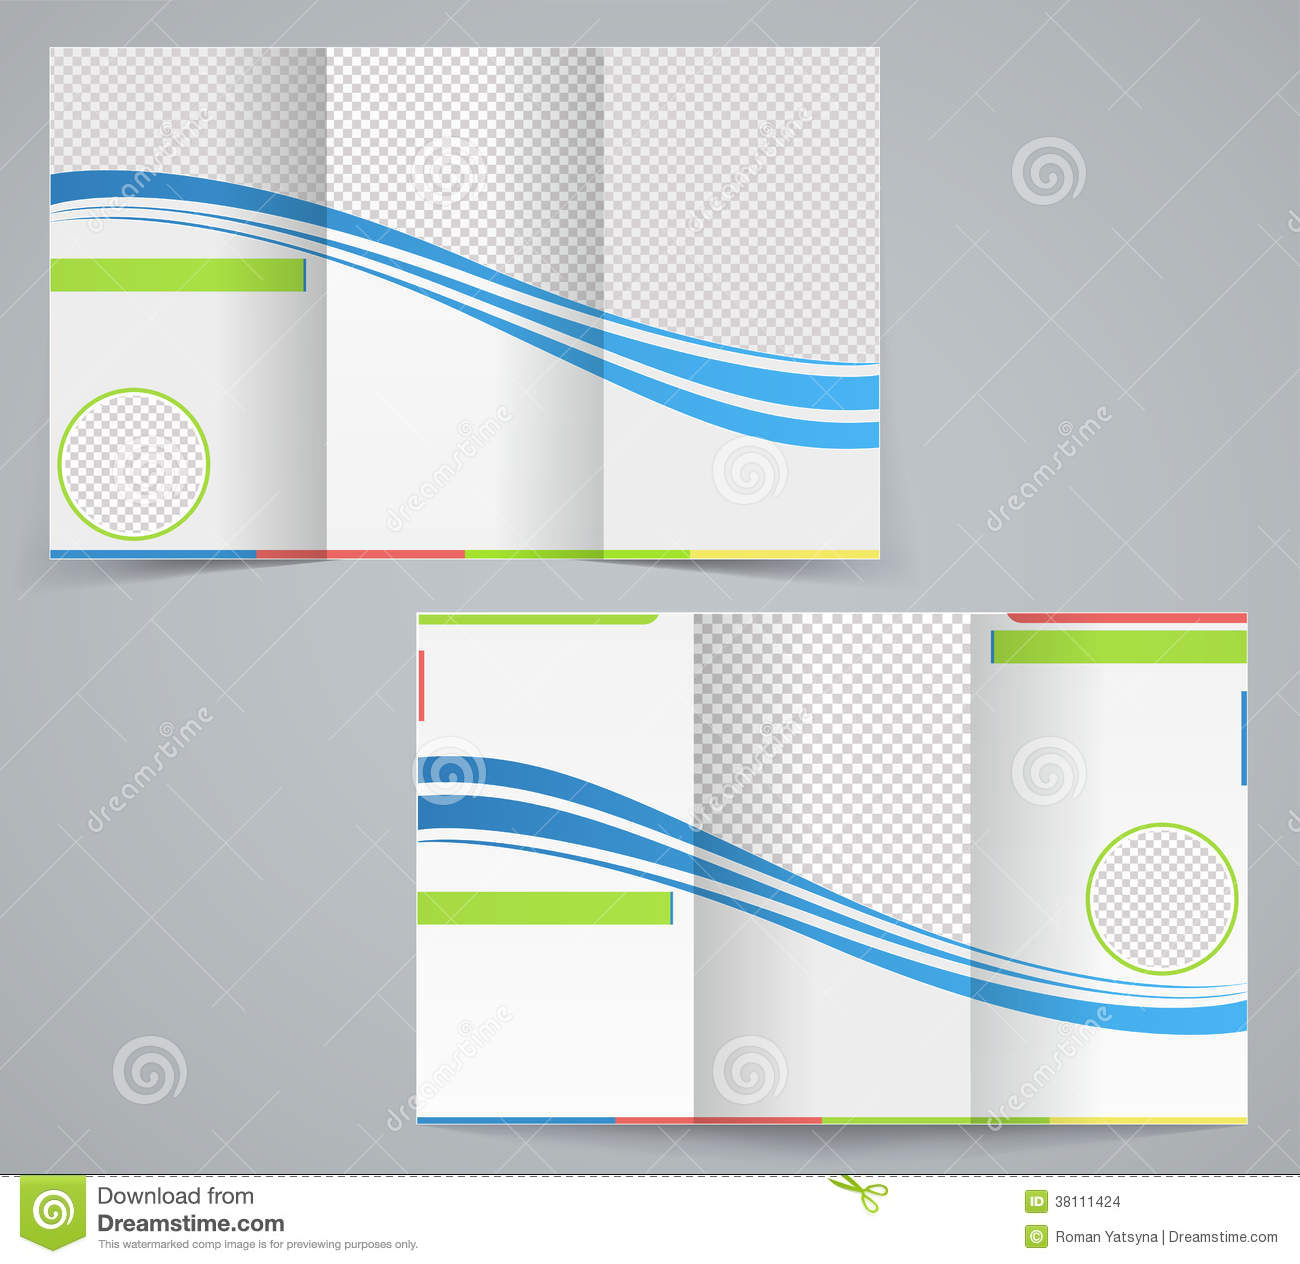 Tri fold business brochure template stock vector for Tri fold brochure template download